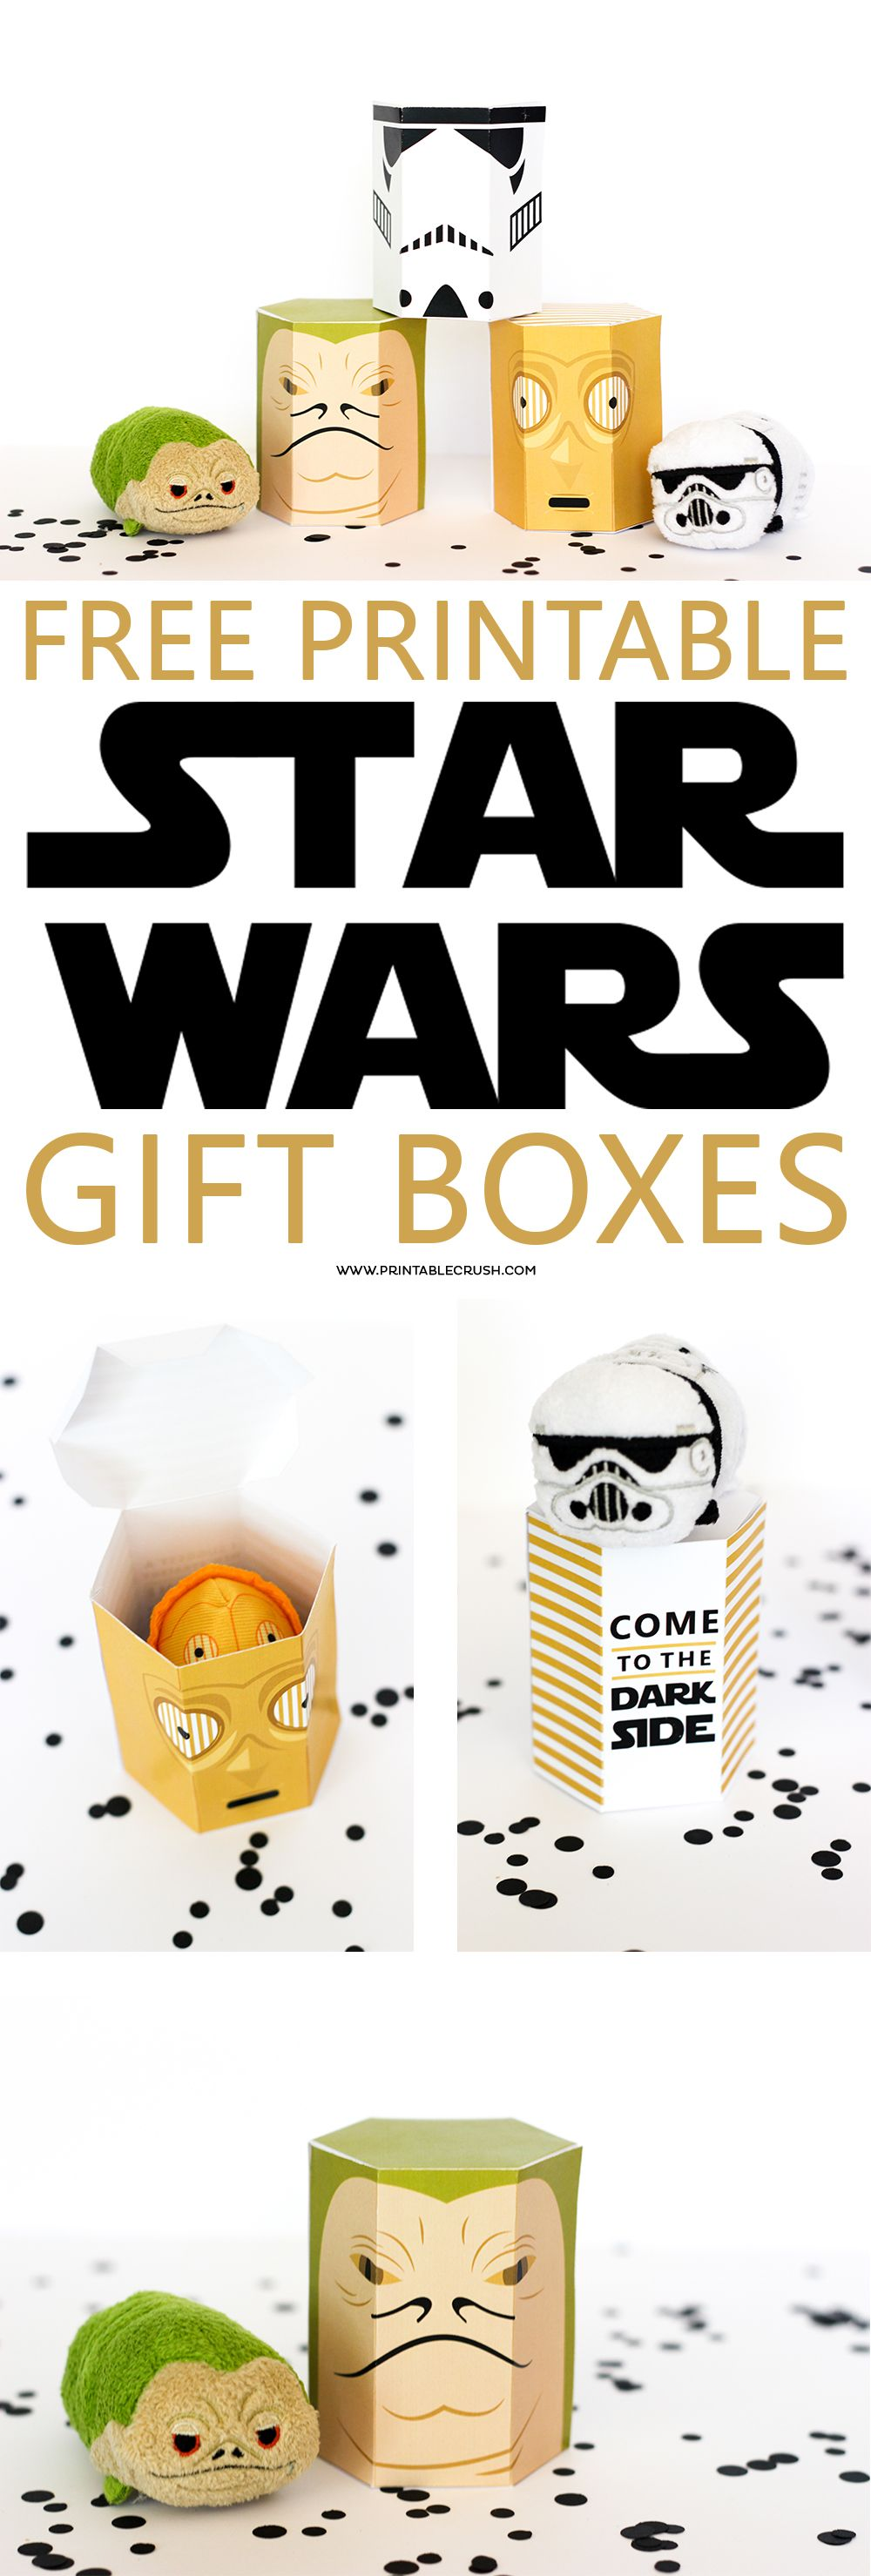 FREE Star Wars Printable Gift Boxes | Pinterest | Tsum tsums, Fans ...